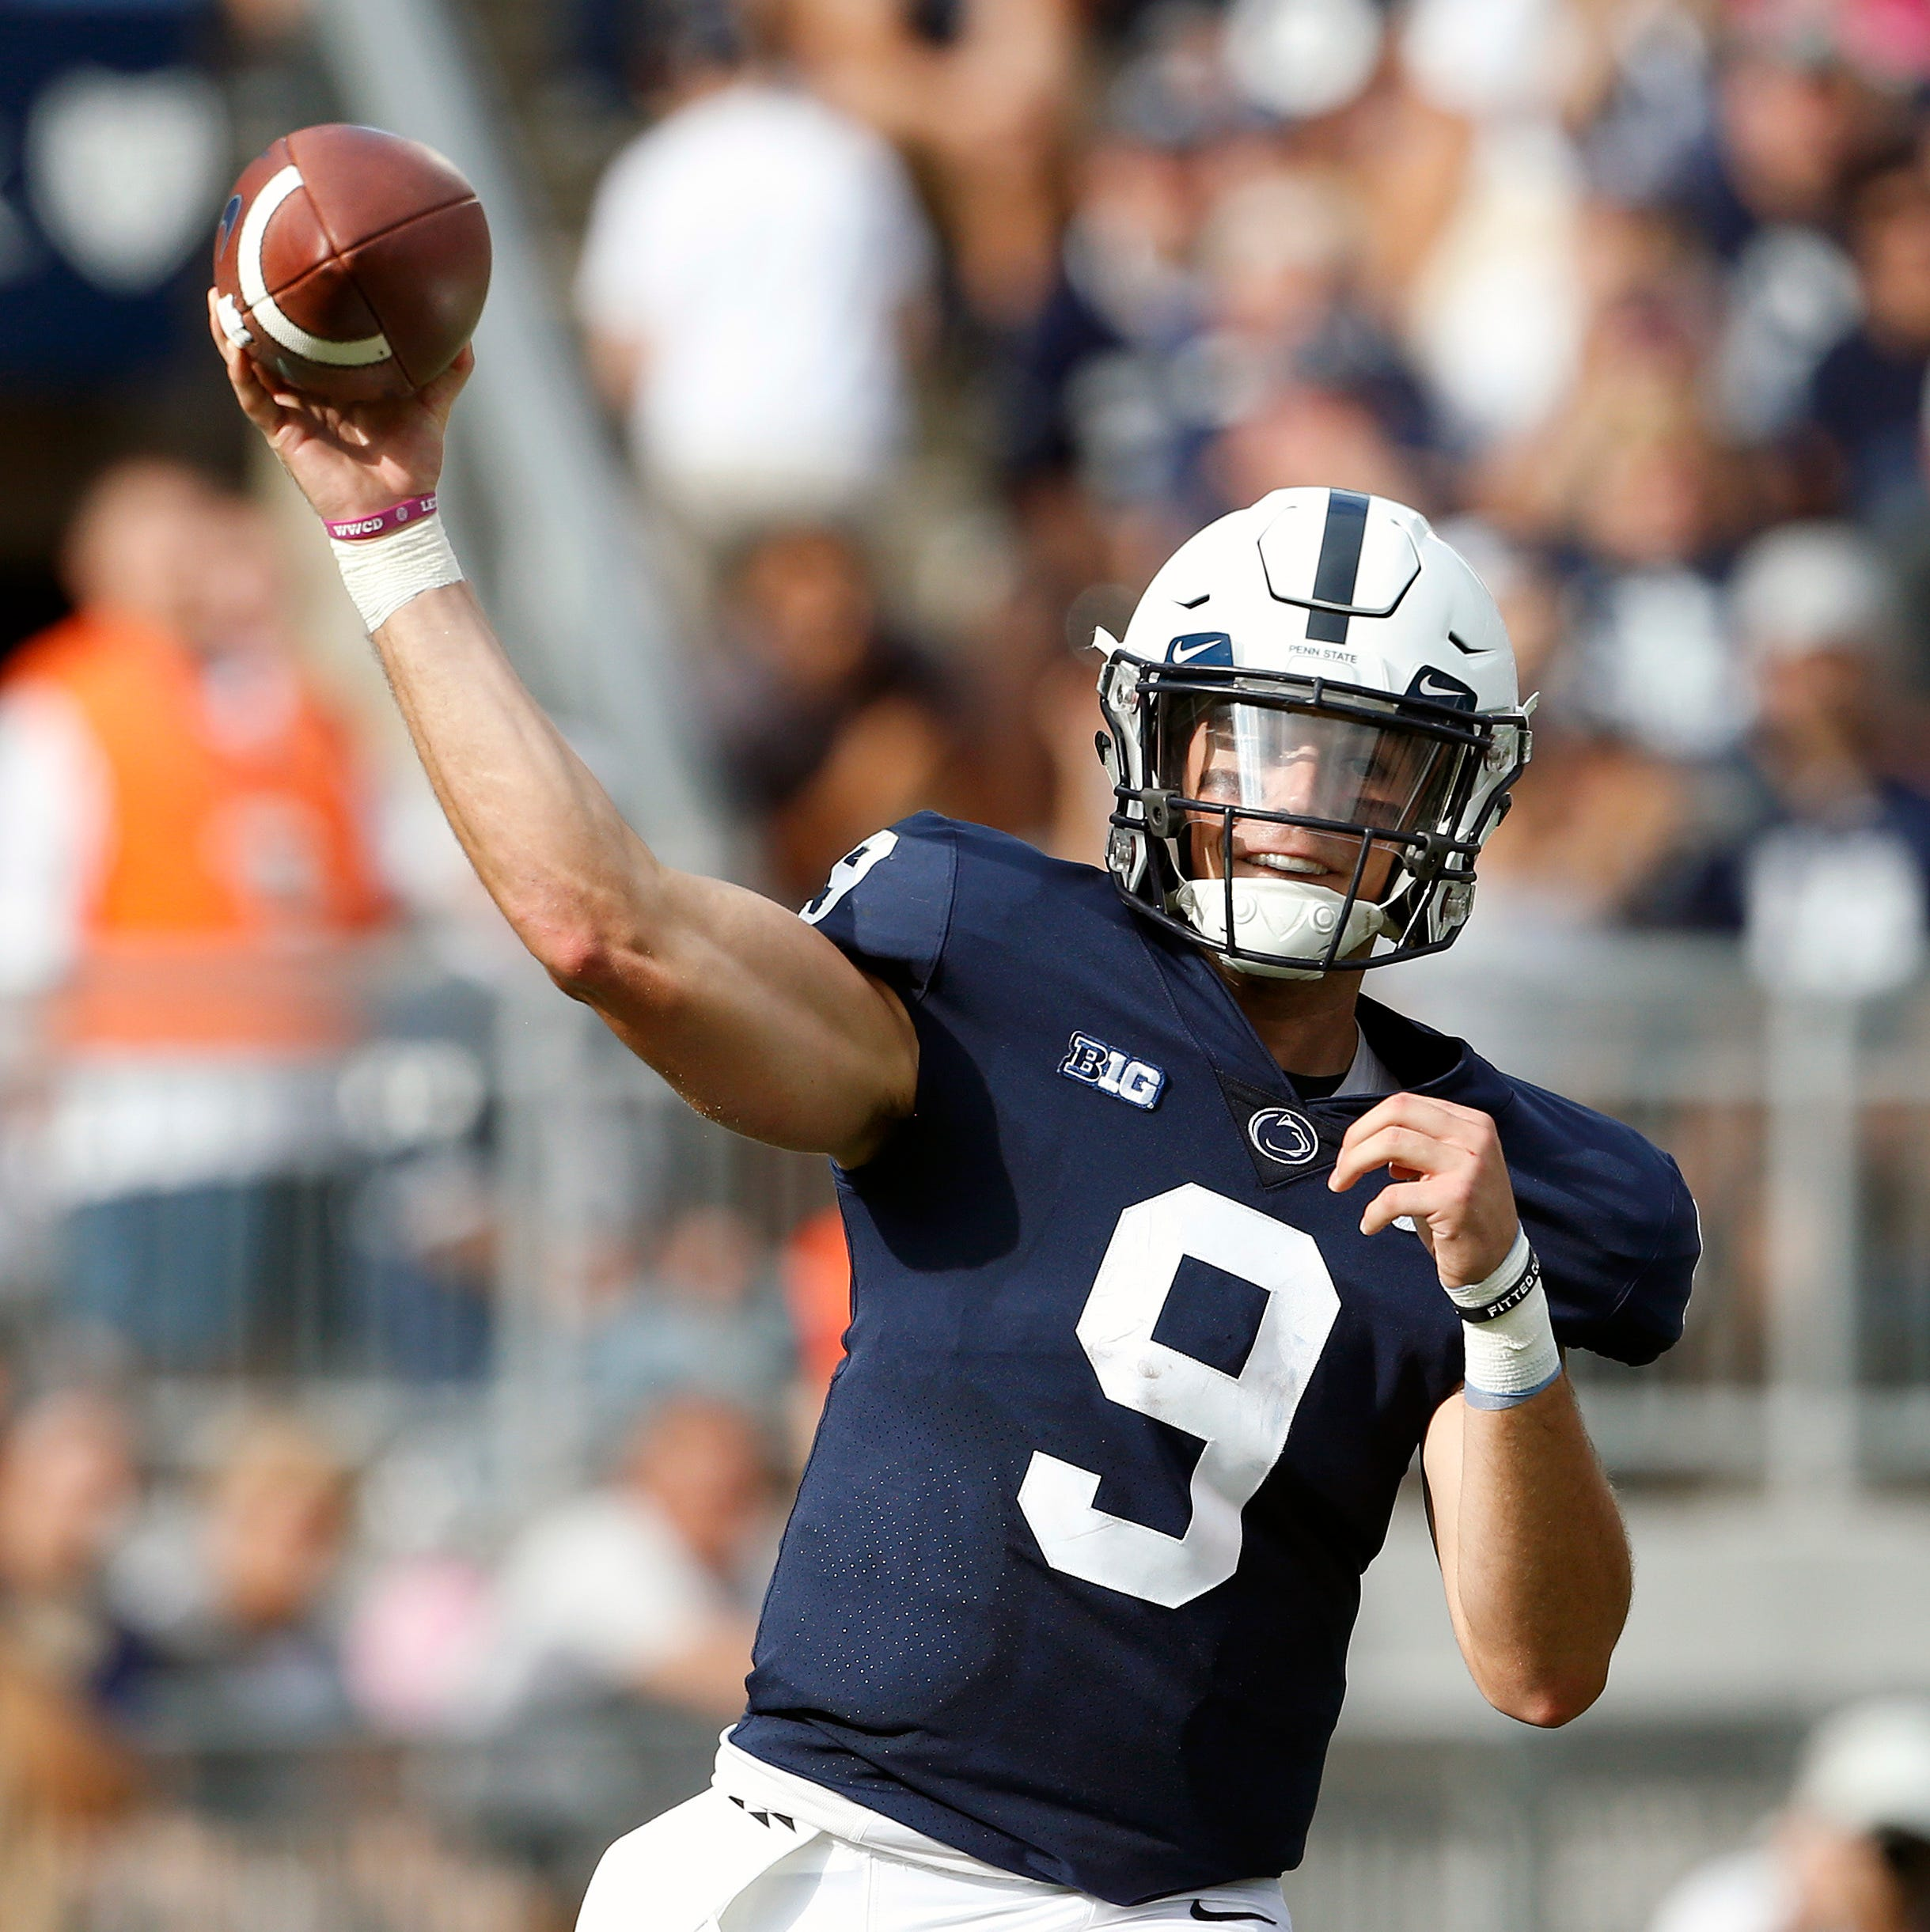 Late-game heroics keep Trace McSorley in prime position on Heisman watch after week 1